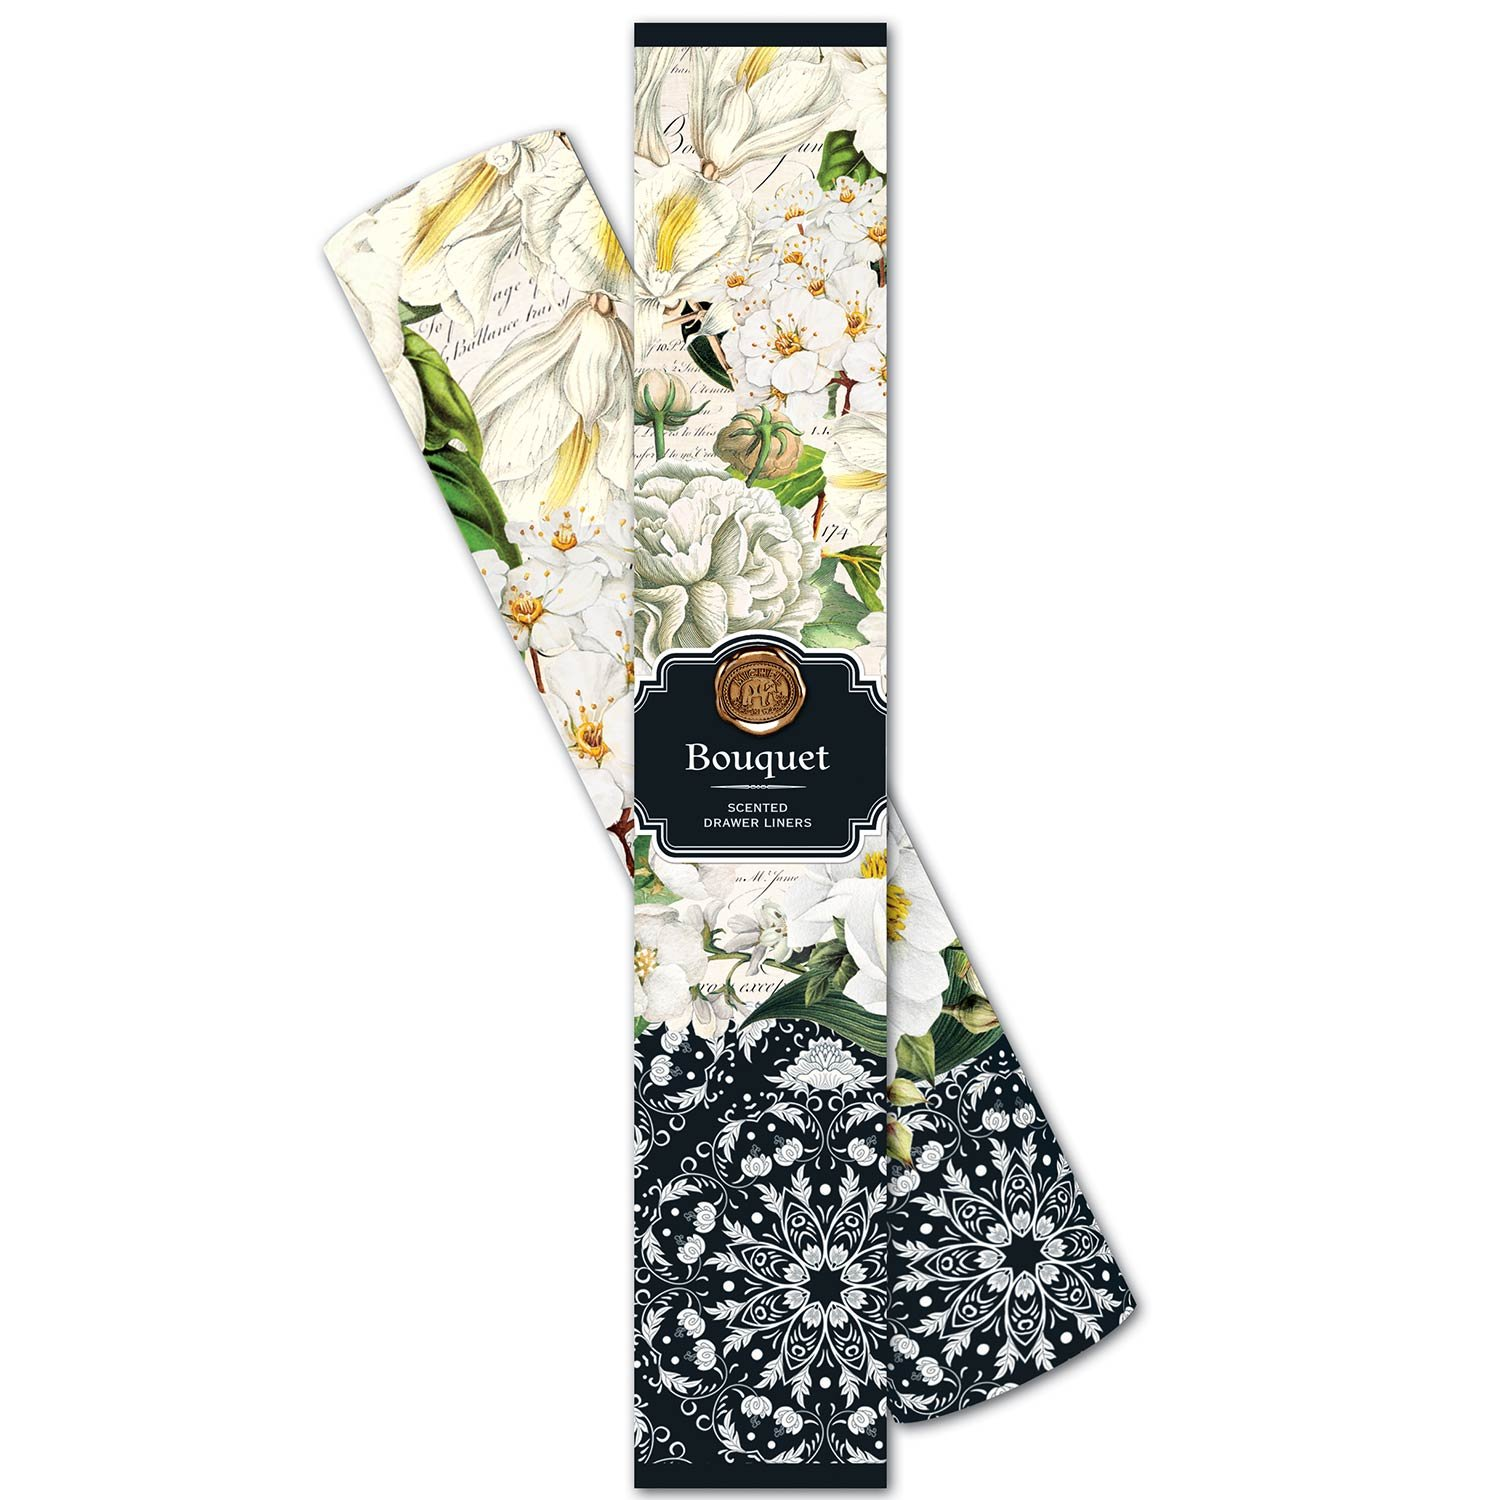 Michel Design Works Scented Drawer Liners, Bouquet